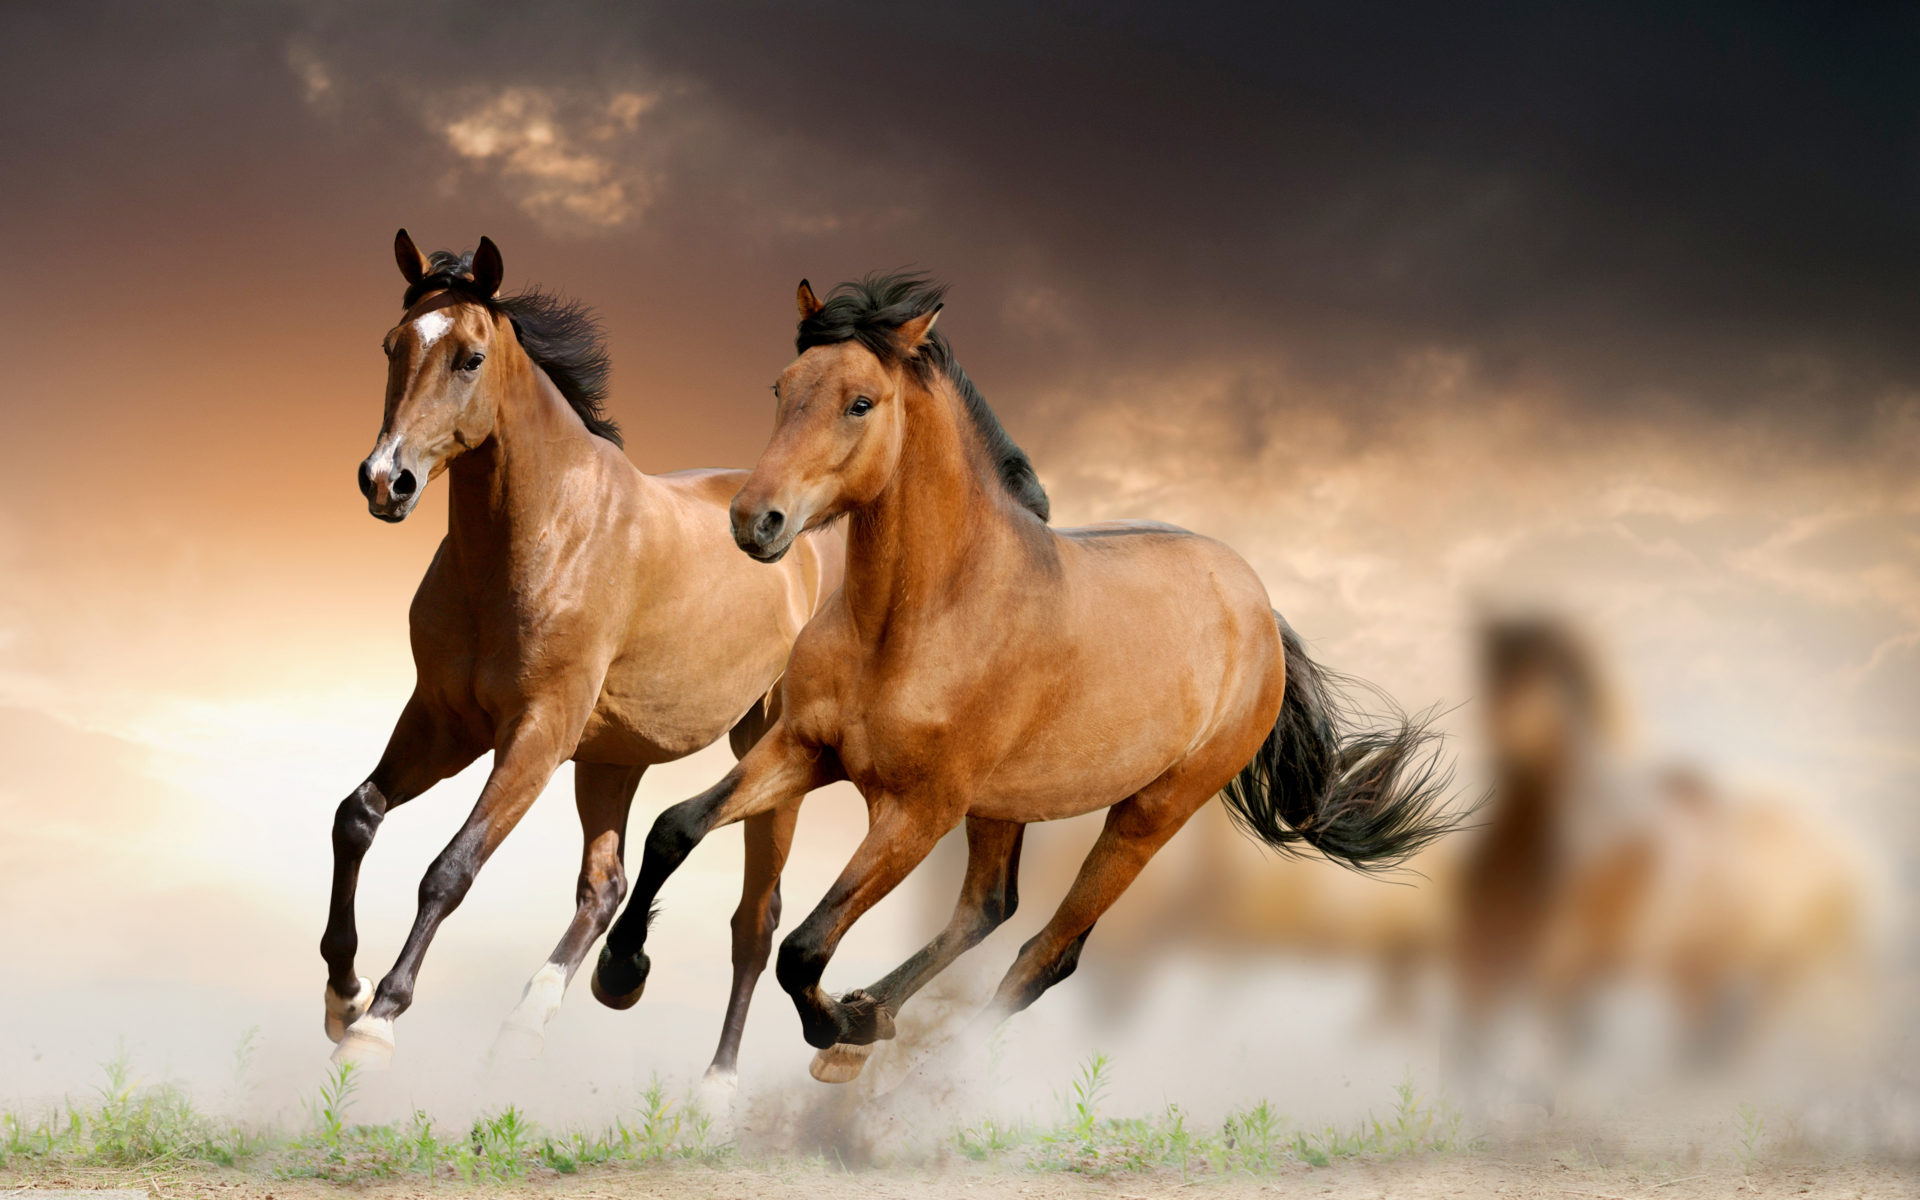 Anaconda Hd Wallpaper Brown Horses Galloping Wallpaper Hd 5120x3200